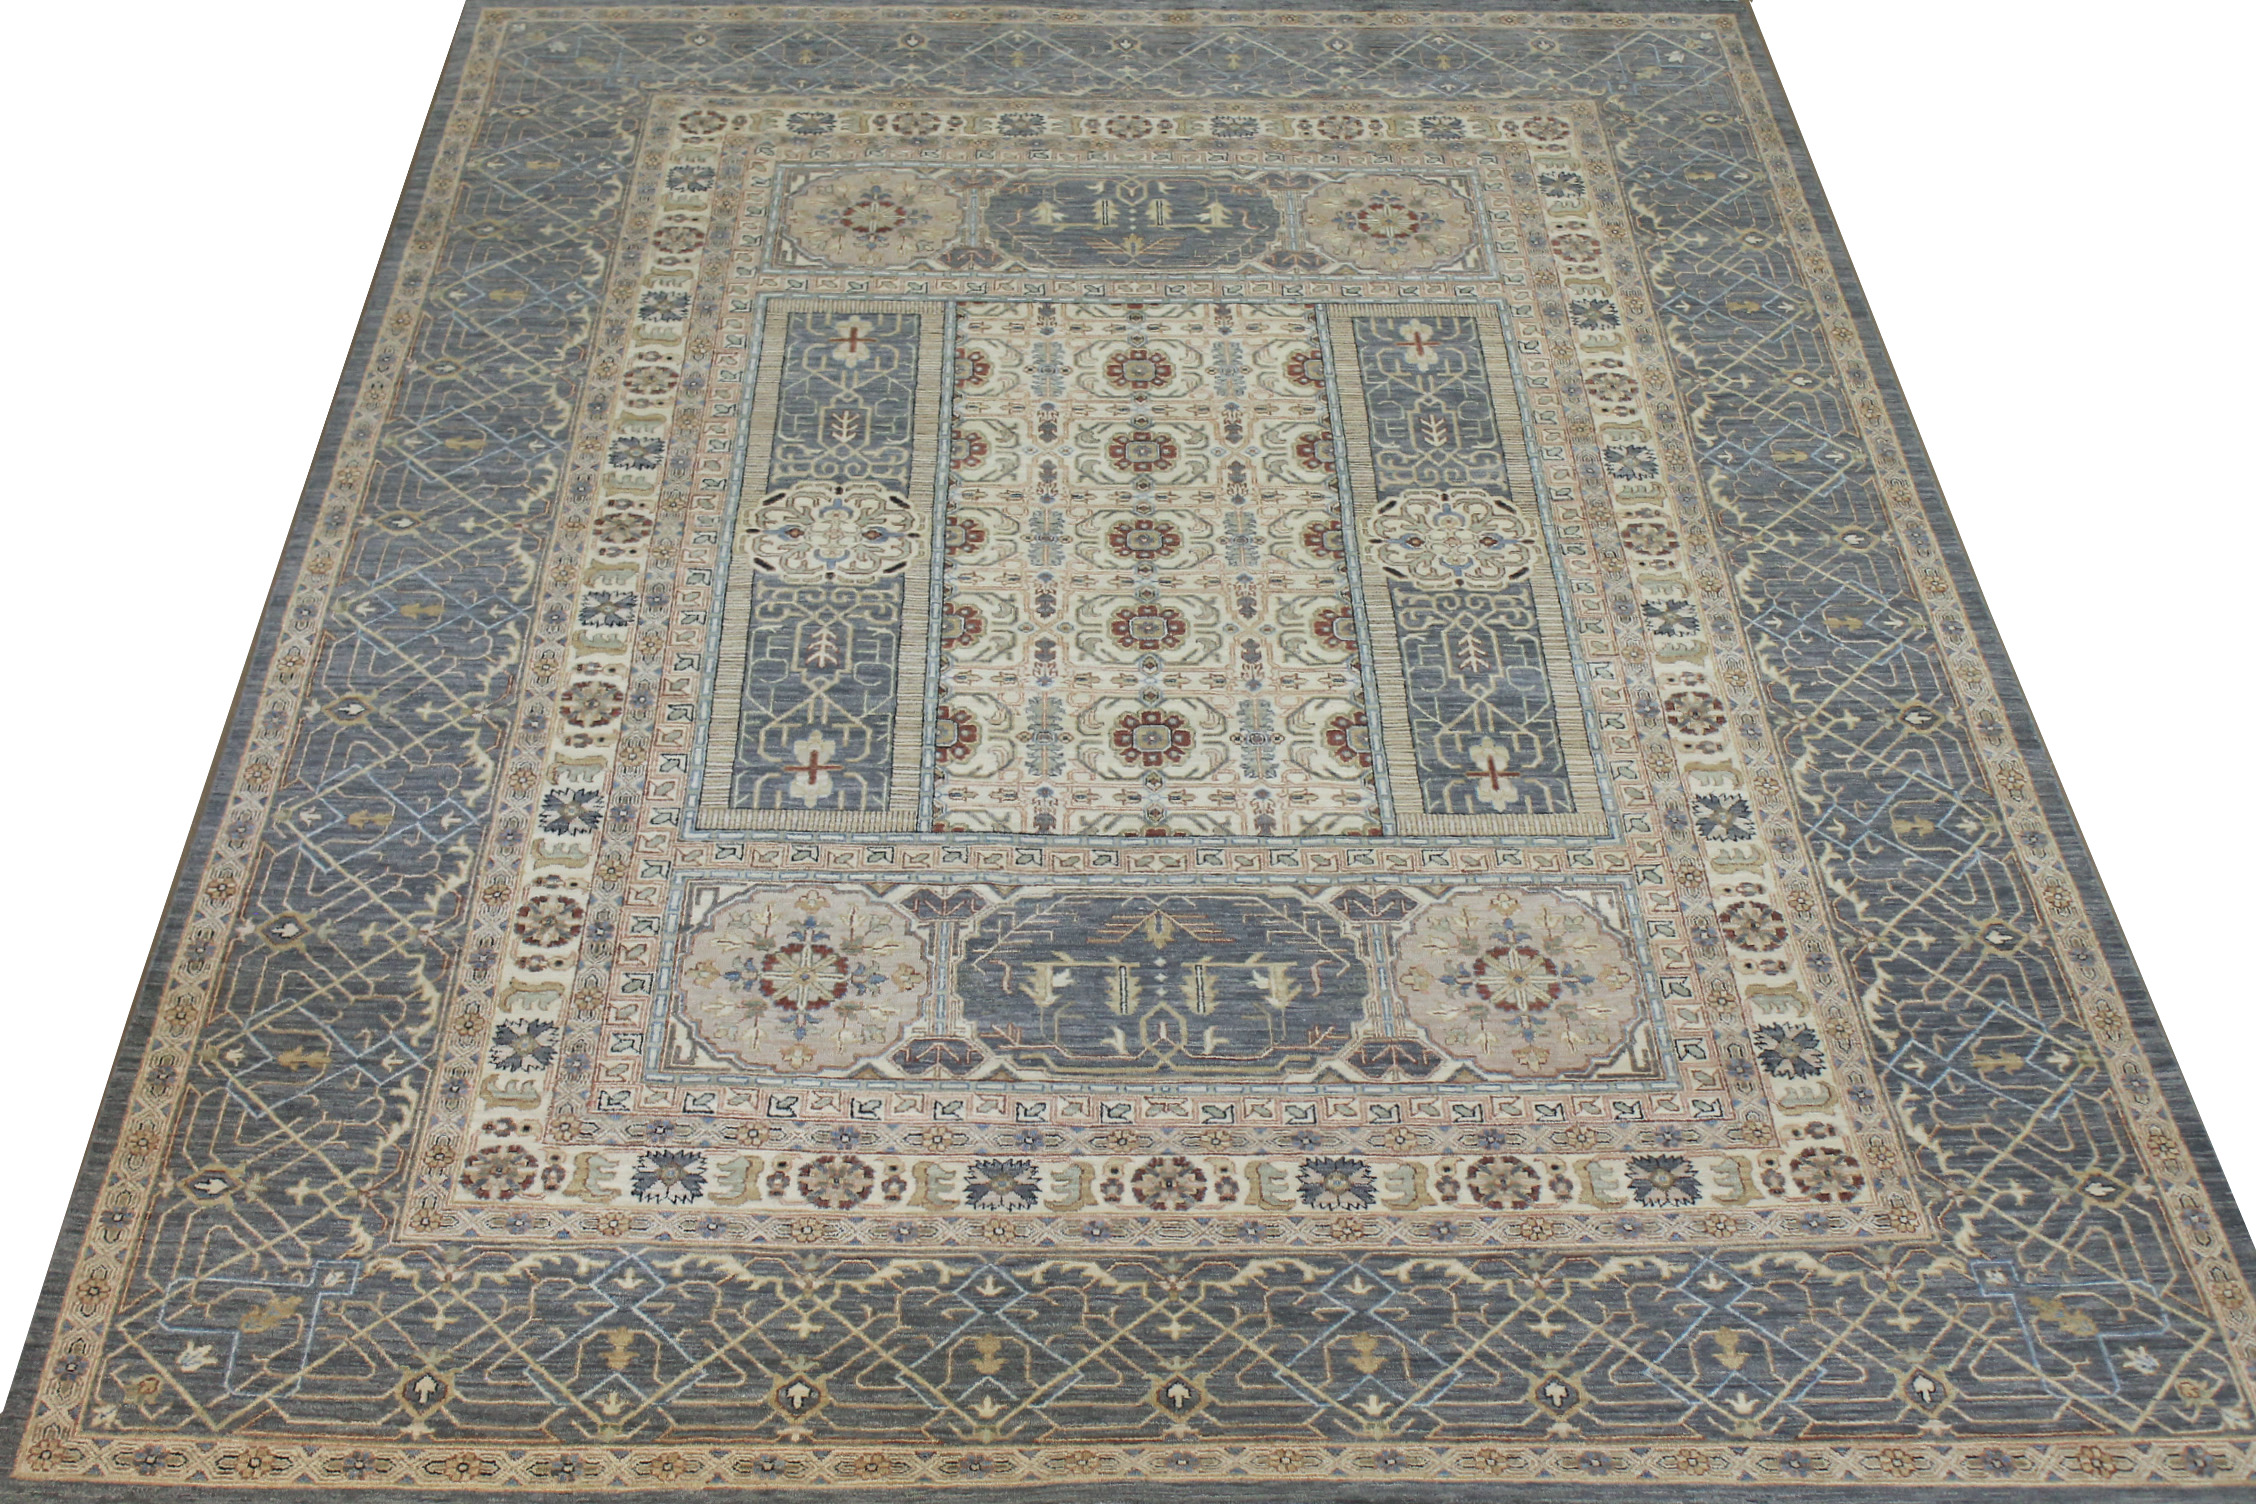 9x12 Traditional Hand Knotted Wool Area Rug - MR024610